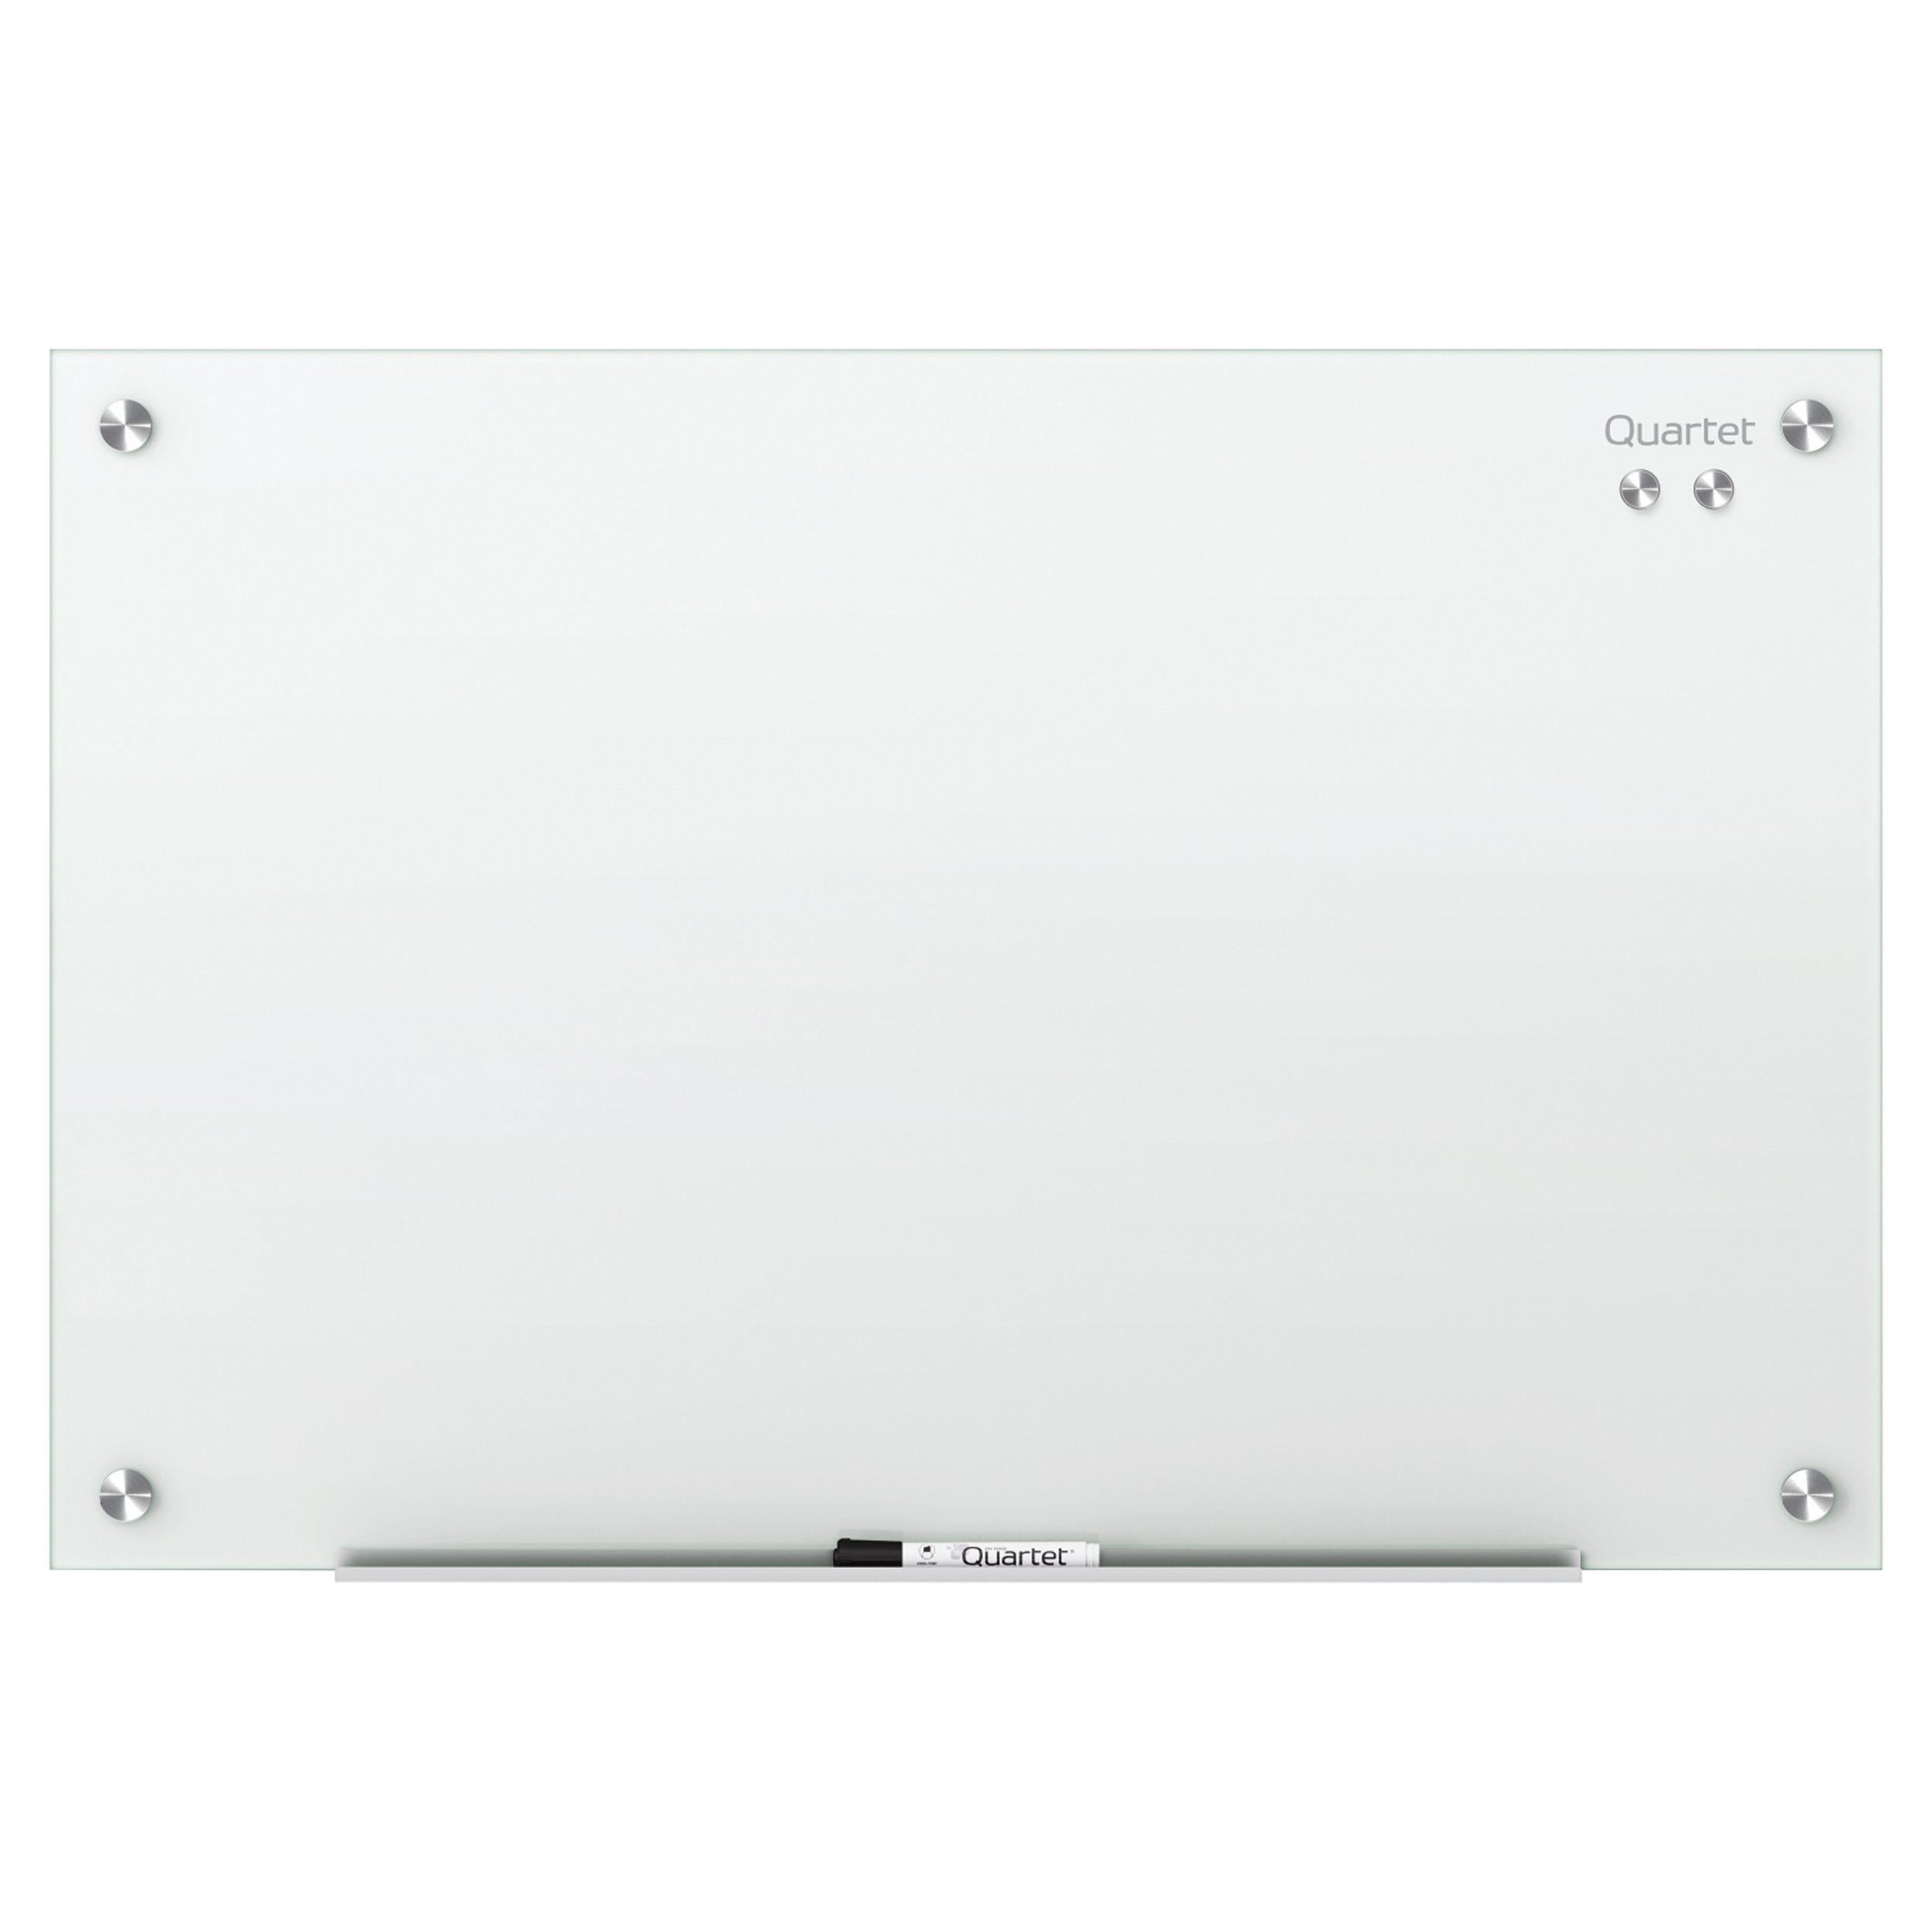 Quartet Glass Dry Erase Board, Whiteboard / White Board, Magnetic, 4' x 3', White Surface, Frameless, Infinity (G4836W) by Quartet